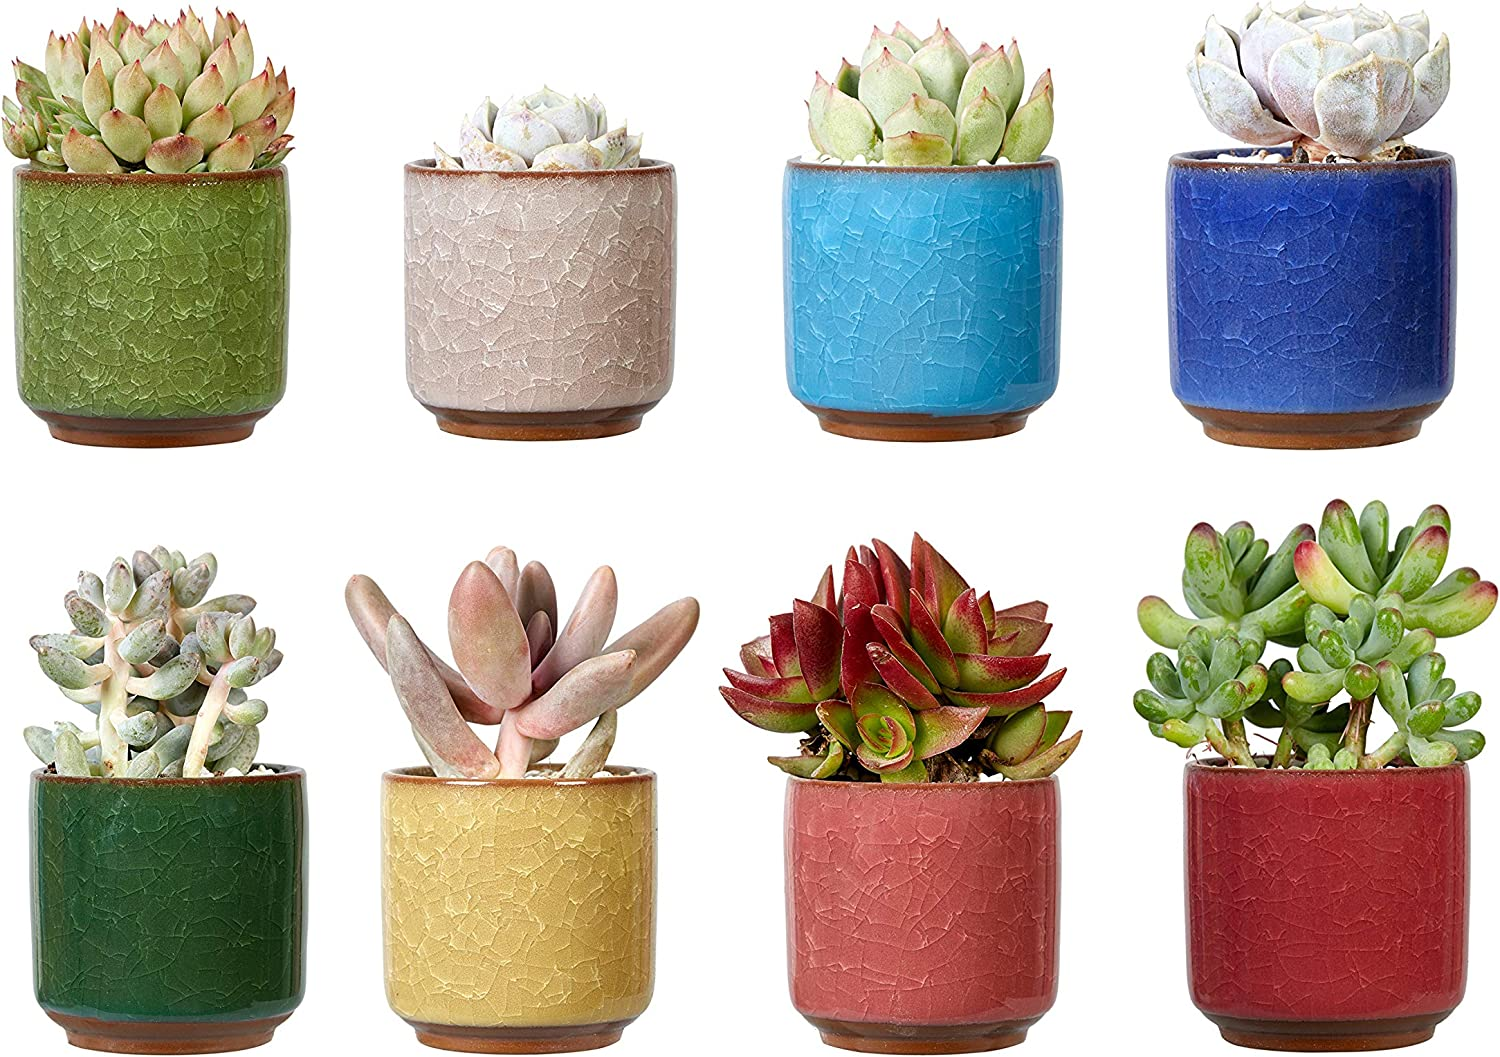 Ceramic Succulent Cactus Planter Pots - MAYZBO 2.5 Inch Ice Crack Glaze Porcelain Handicraft Containers for Home Office Desk Decoration with Drainage Hole, Set of 8